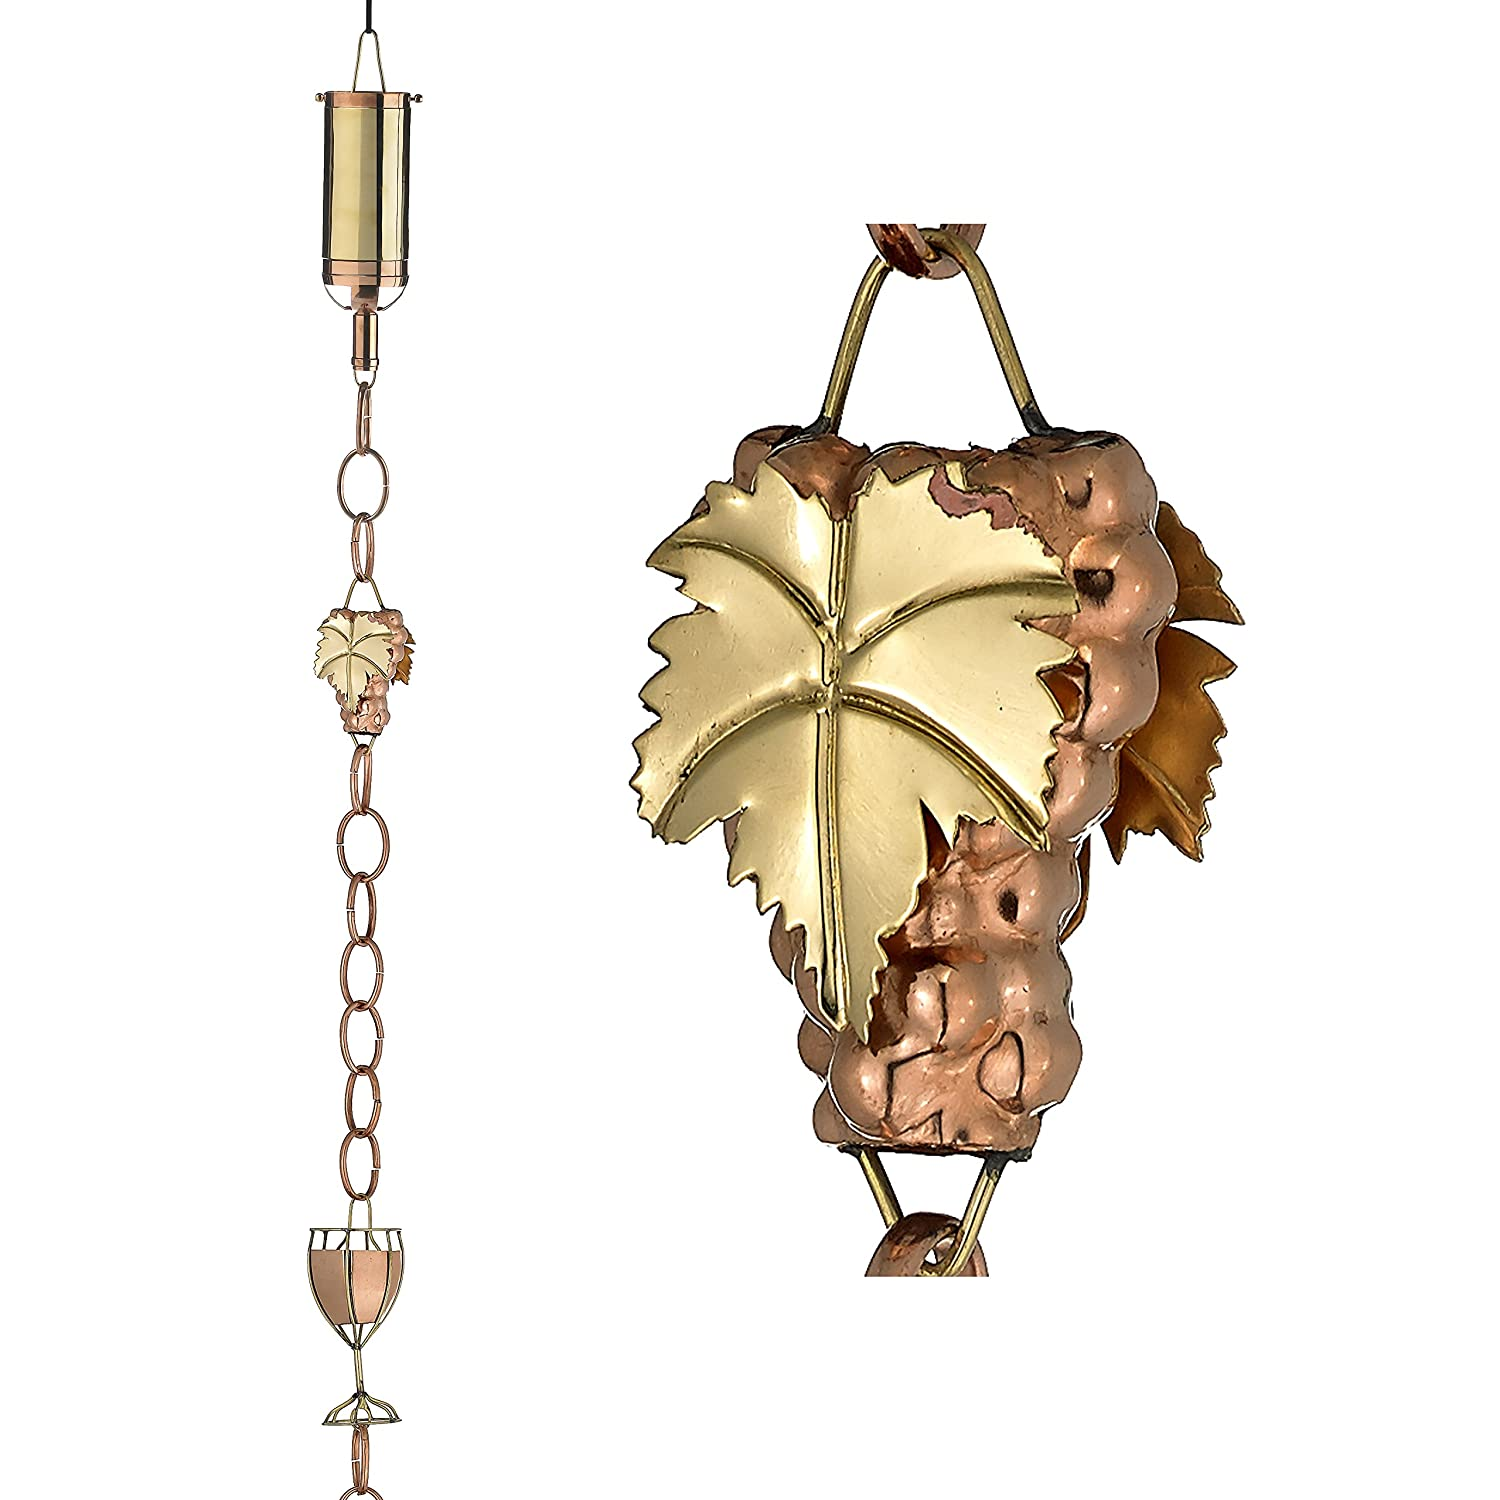 Good Directions 484P-8 Wine Bottle with Grapes & Glasses Rain Chain, 9-1/2', Polished Copper 9-1/2' Inc.